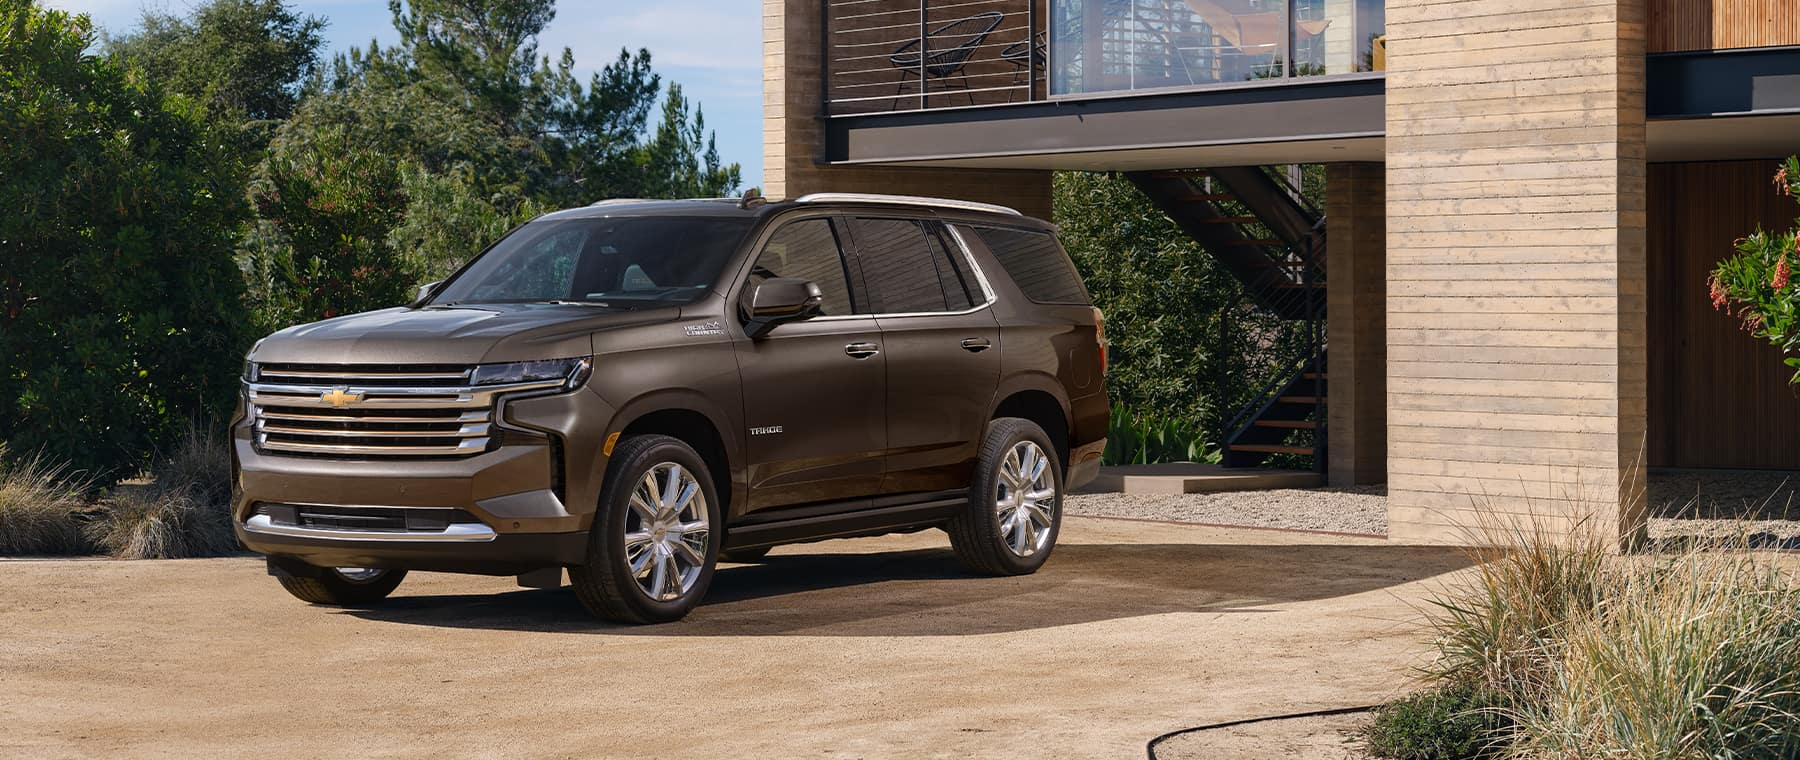 2021 Chevrolet Tahoe in front of a luxurious home